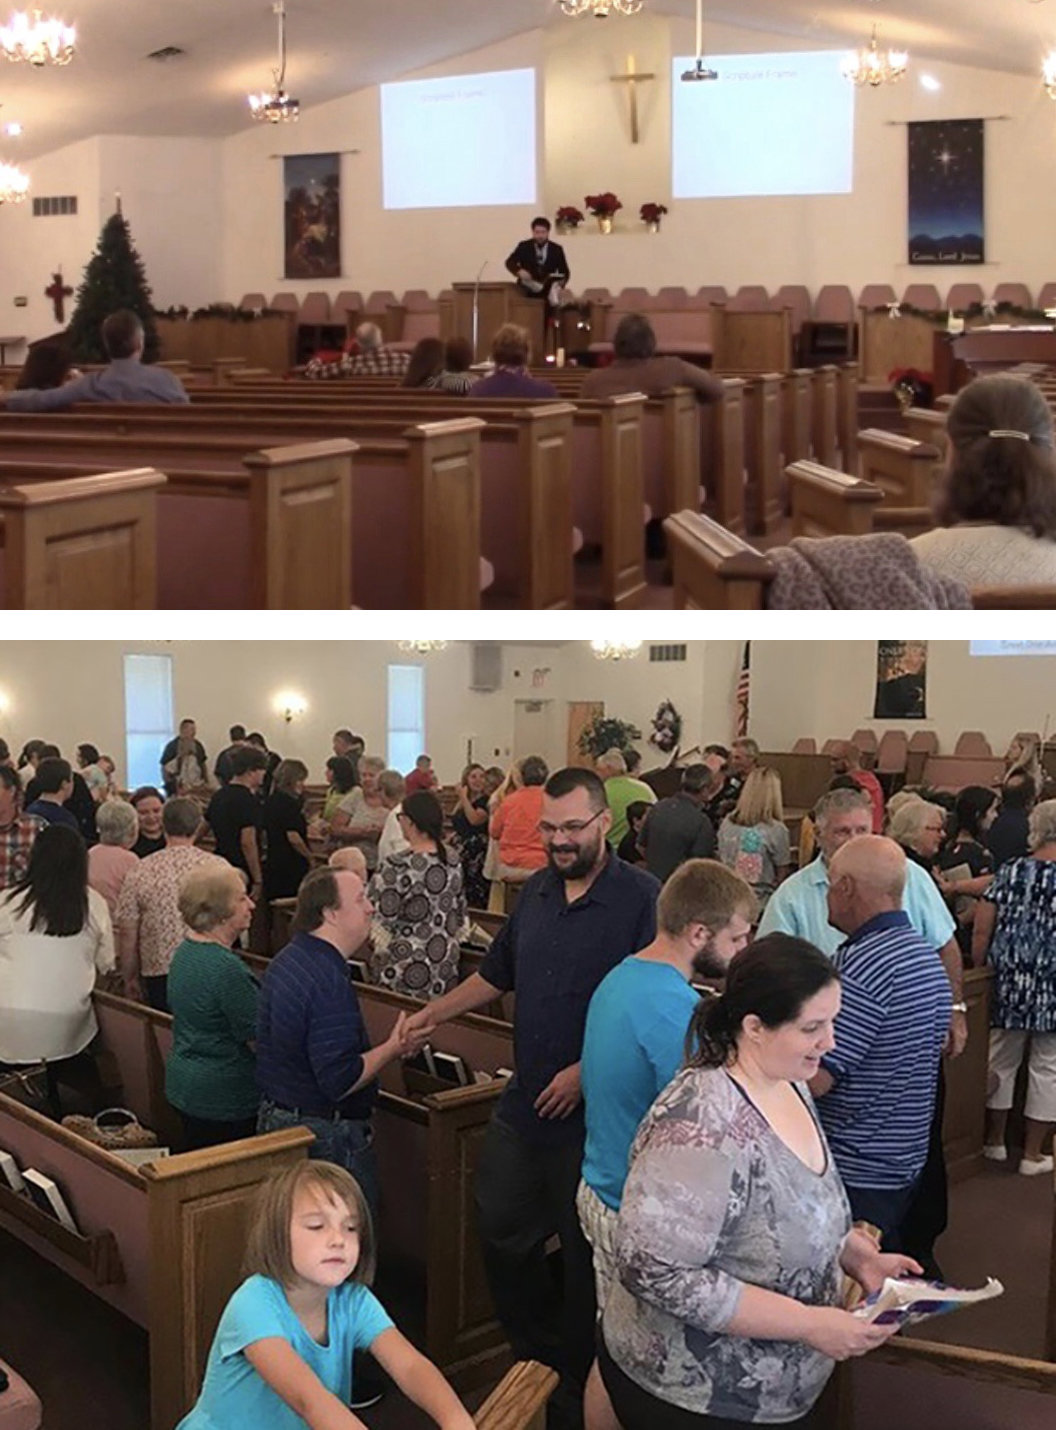 The above photo shows the congregation when Abram Crozier became pastor at Trinity Southern Baptist Church in Falmouth, Ky. Below is a church alive and growing a year later. (Submitted photos)